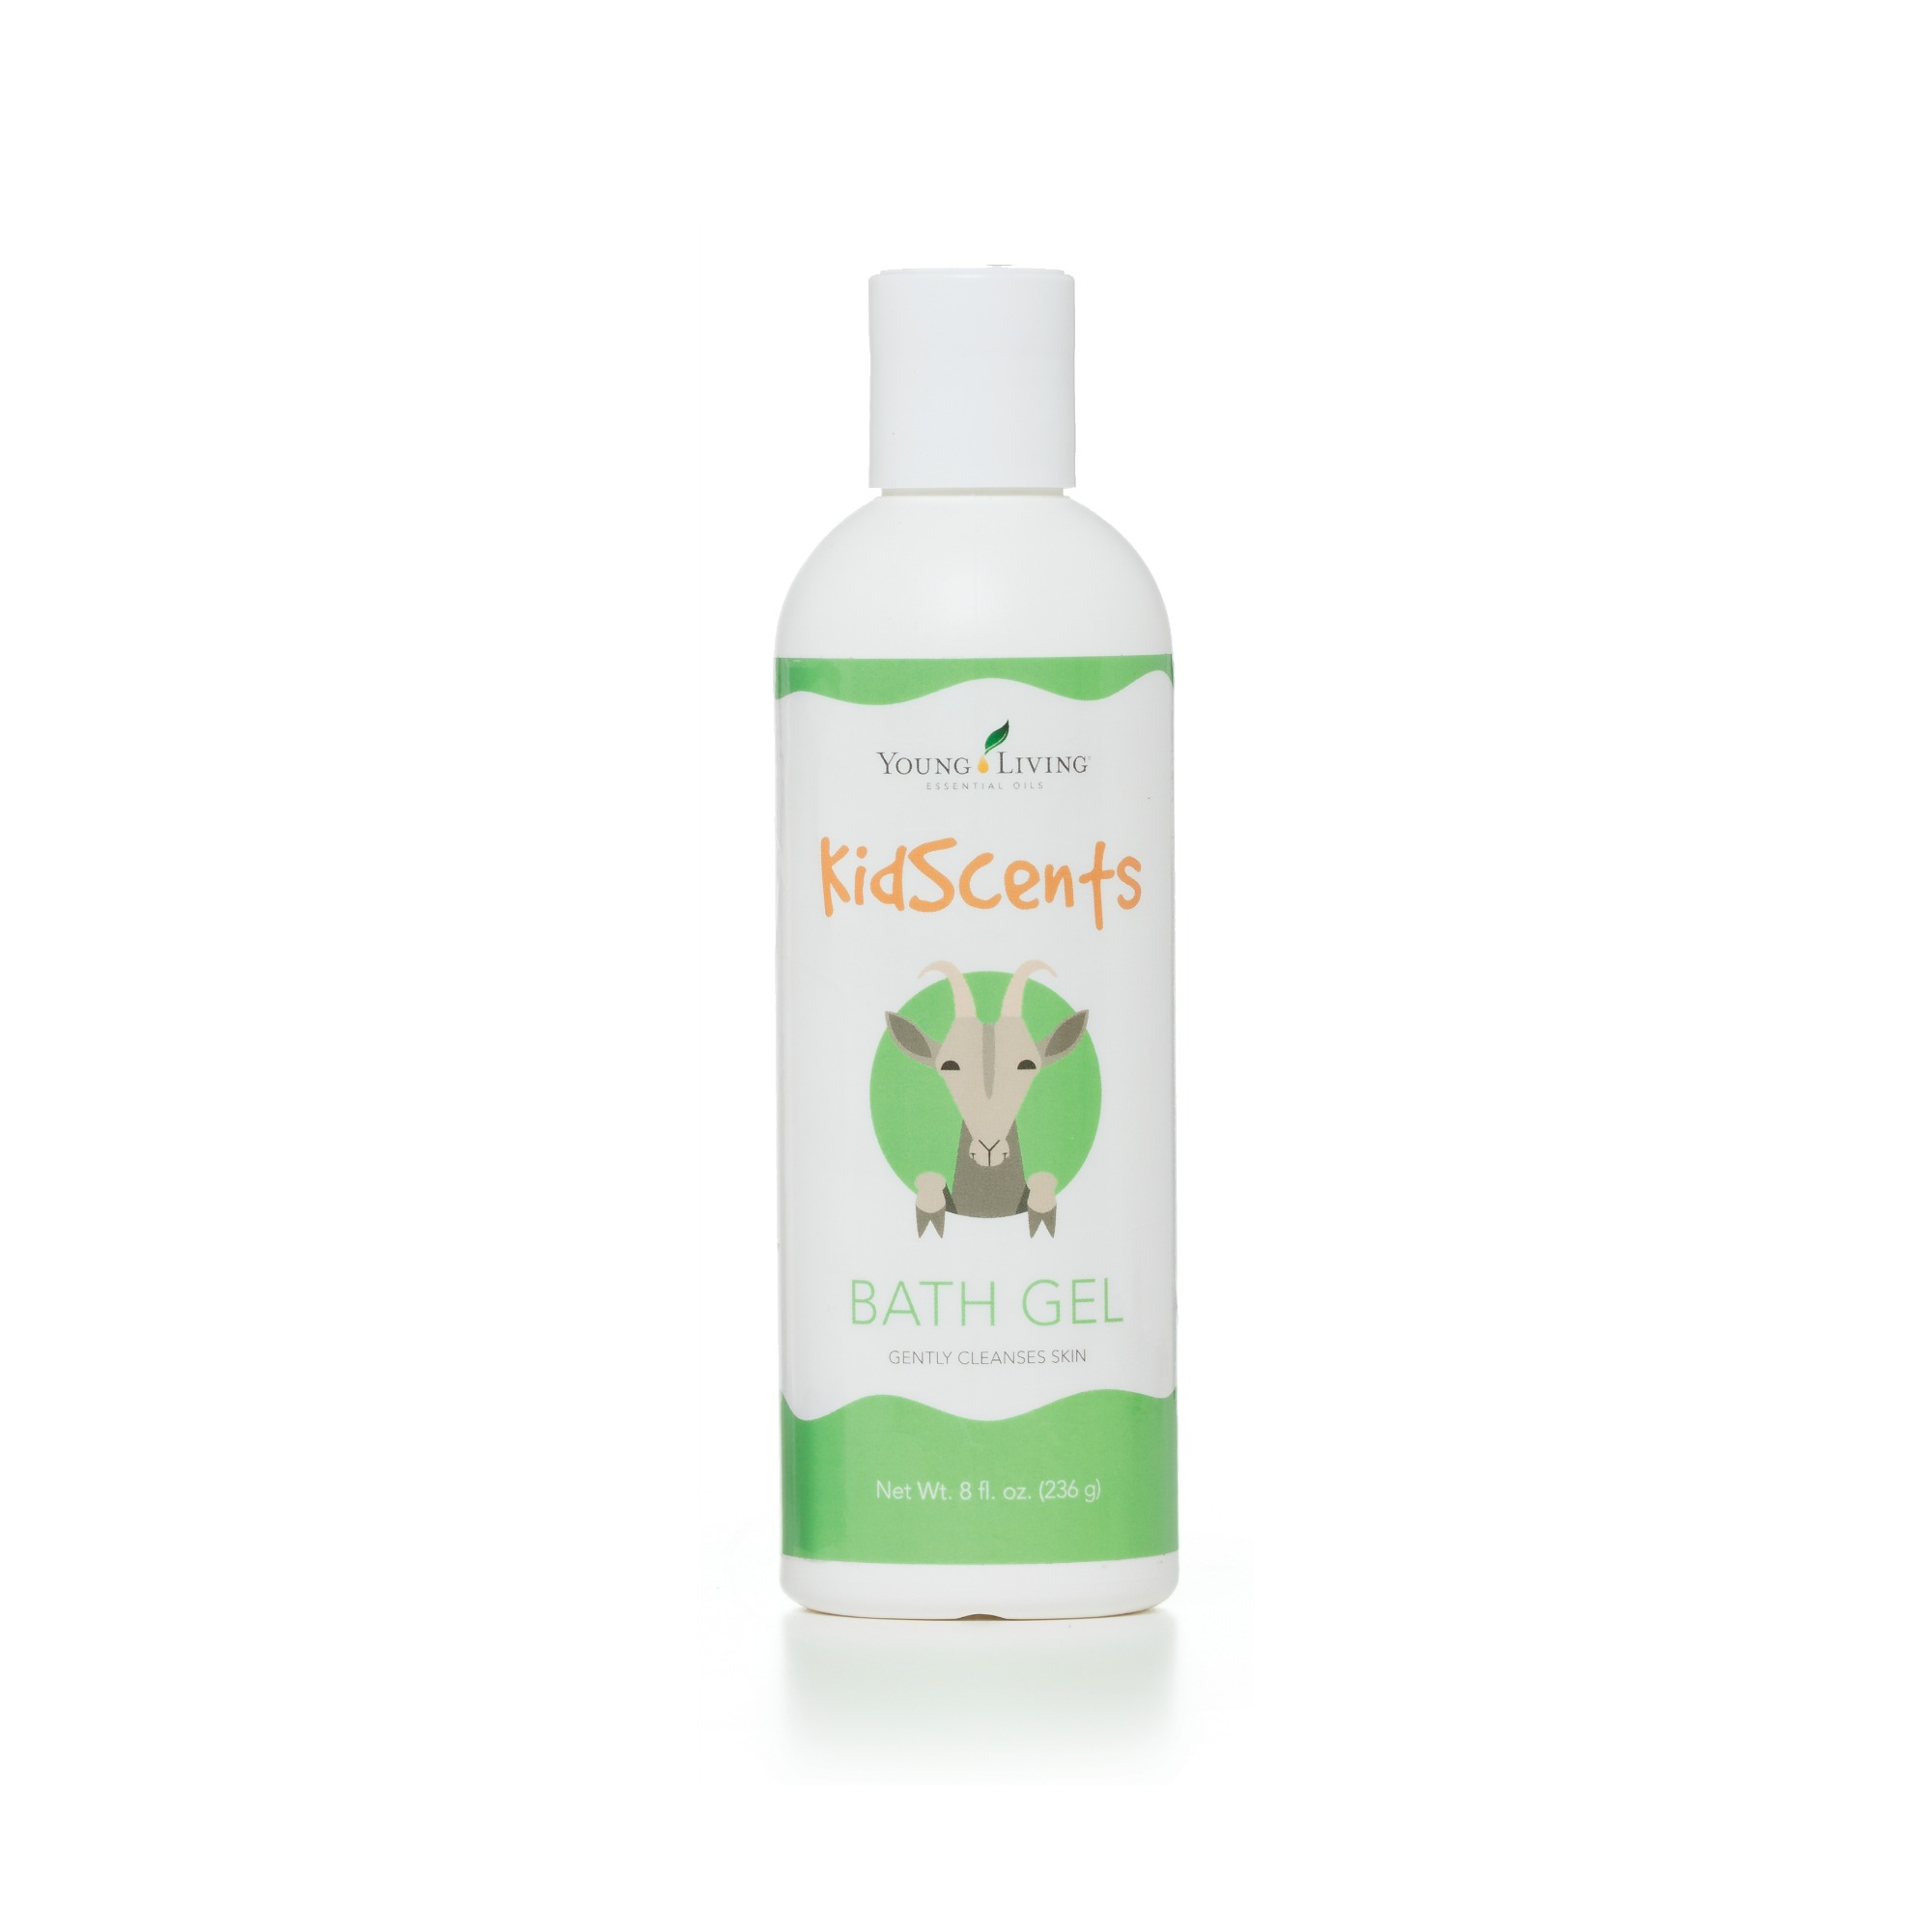 KIDSCENTS BATH GEL    KidScents Bath Gel is a safe, gentle soap that cleanses and protects sensitive skin. Formulated with MSM, aloe vera, antioxidants, and pure Lemon, Cedarwood, and other essential oils, this liquid soap is pH balanced for children's skin. Perfect for babies and kids. Contains   natural Ingredients, therapeutic-grade essential oils, no mineral oils, no synthetic perfumes, no artificial colorings, and no toxic ingredients.   Click here   to learn more about this product.